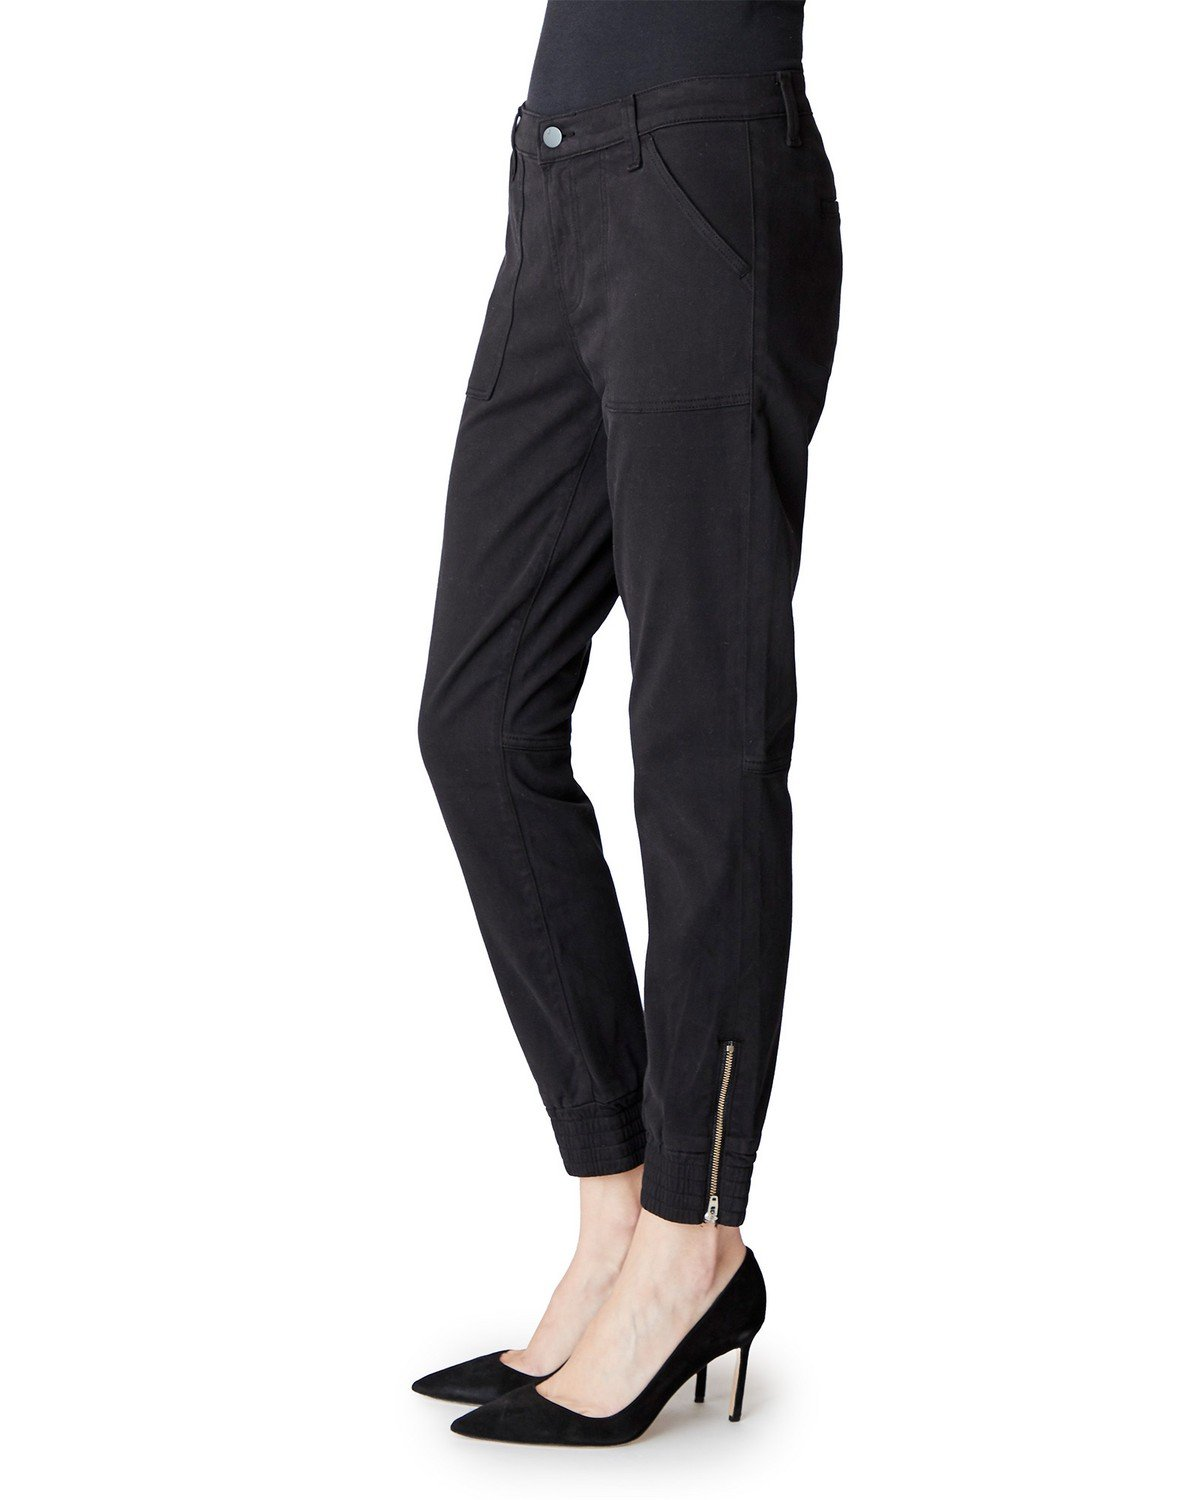 Edwards Imports Ltd Womens Pants J Brand | Arkin Zip Ankle Jogger - Black